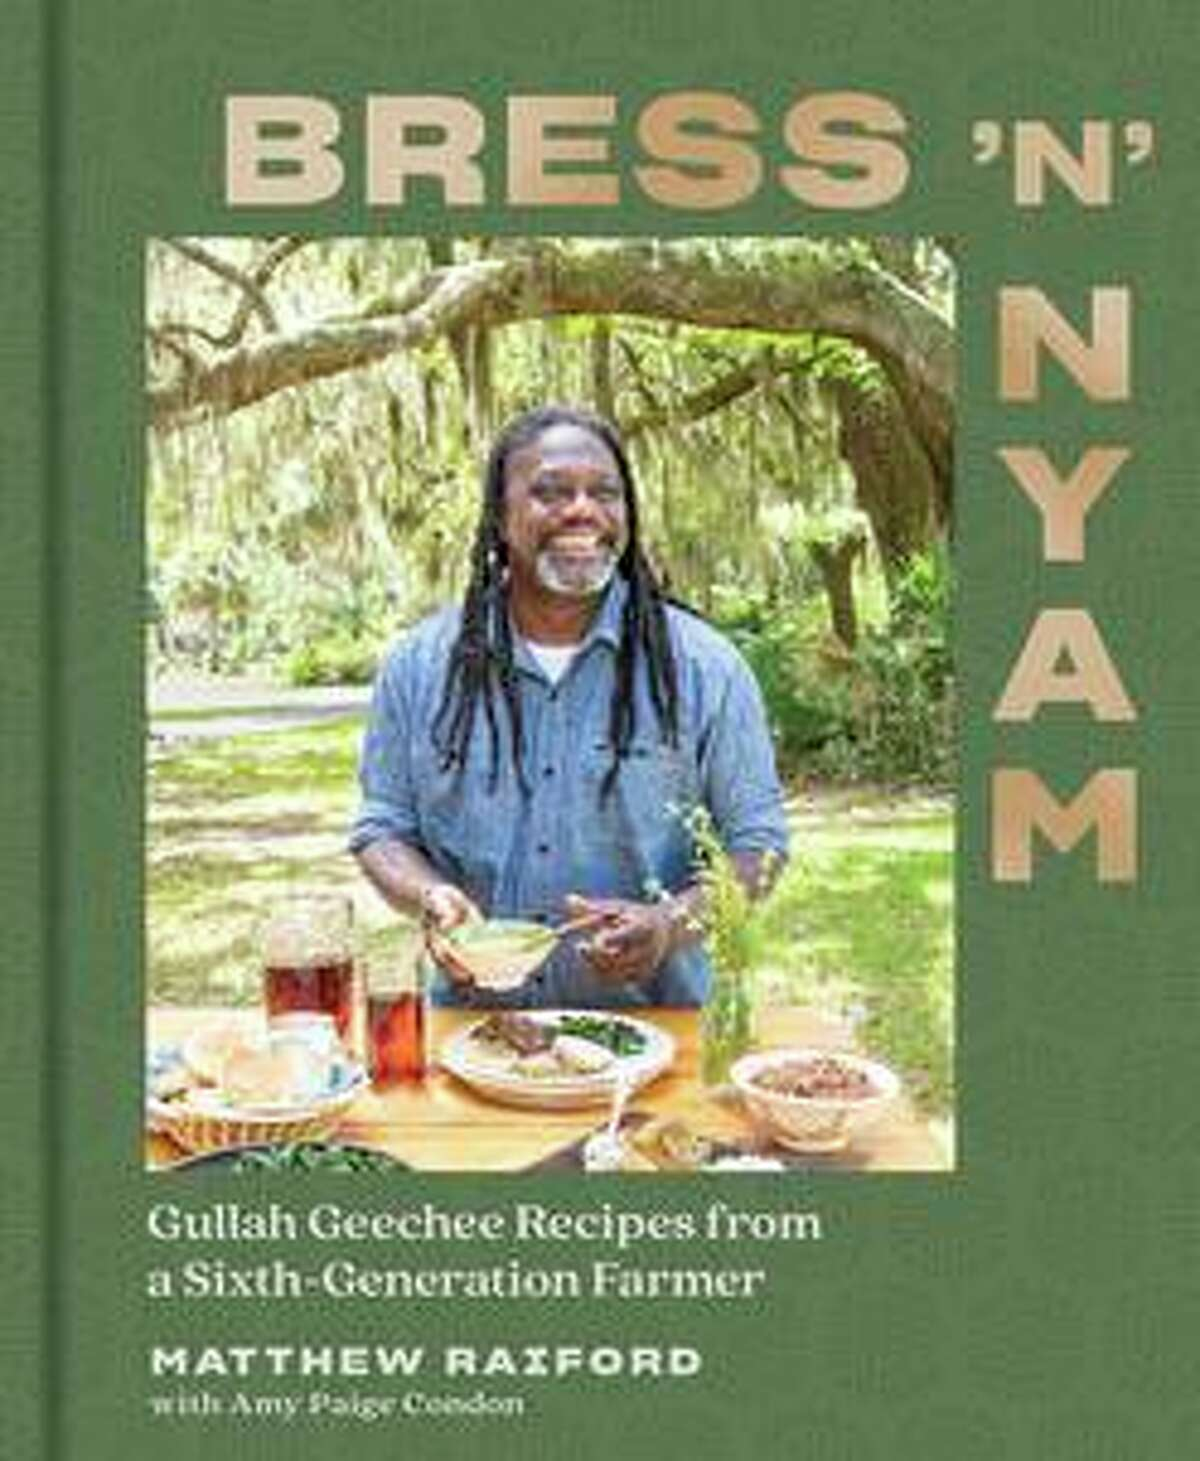 """The cover for """"Bress 'n' Nyam: Gullah Geechee Recipes From a Sixth-Generation Farmer"""" by Matthew Raiford with Amy Paige Condon."""